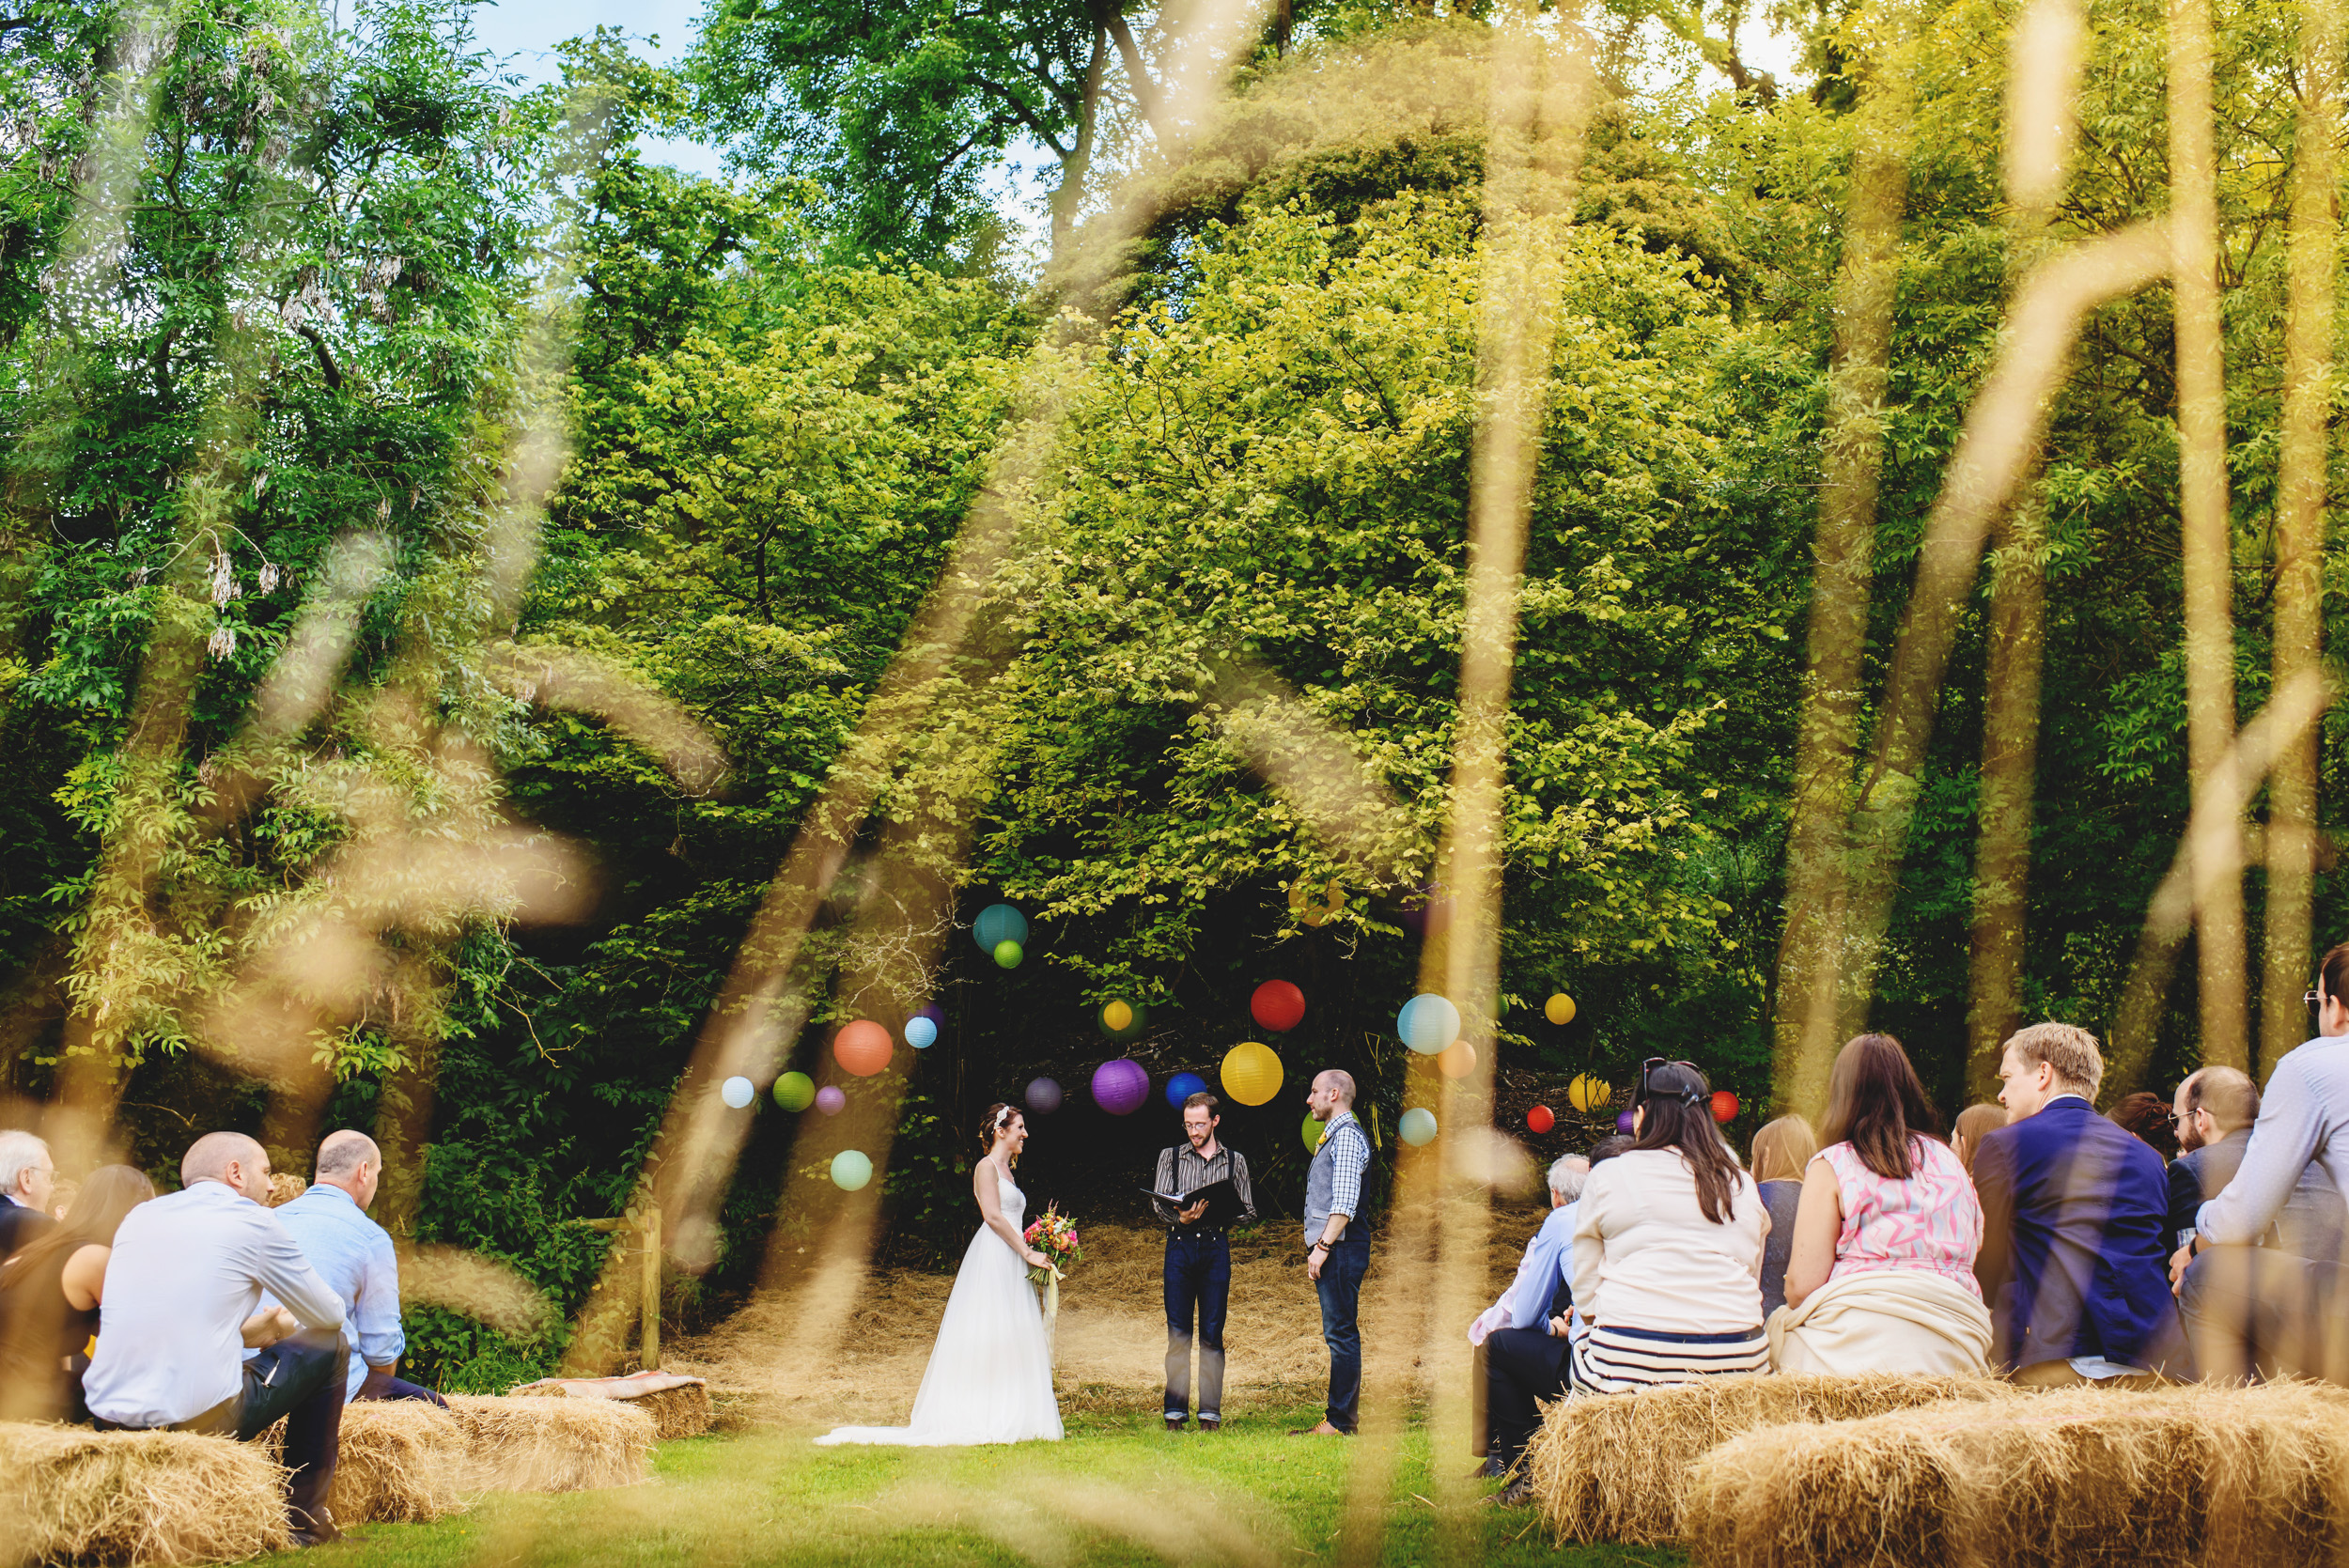 Our Humanist Wedding 2016, Wiltshire, UK. Photo  Ross Harvey